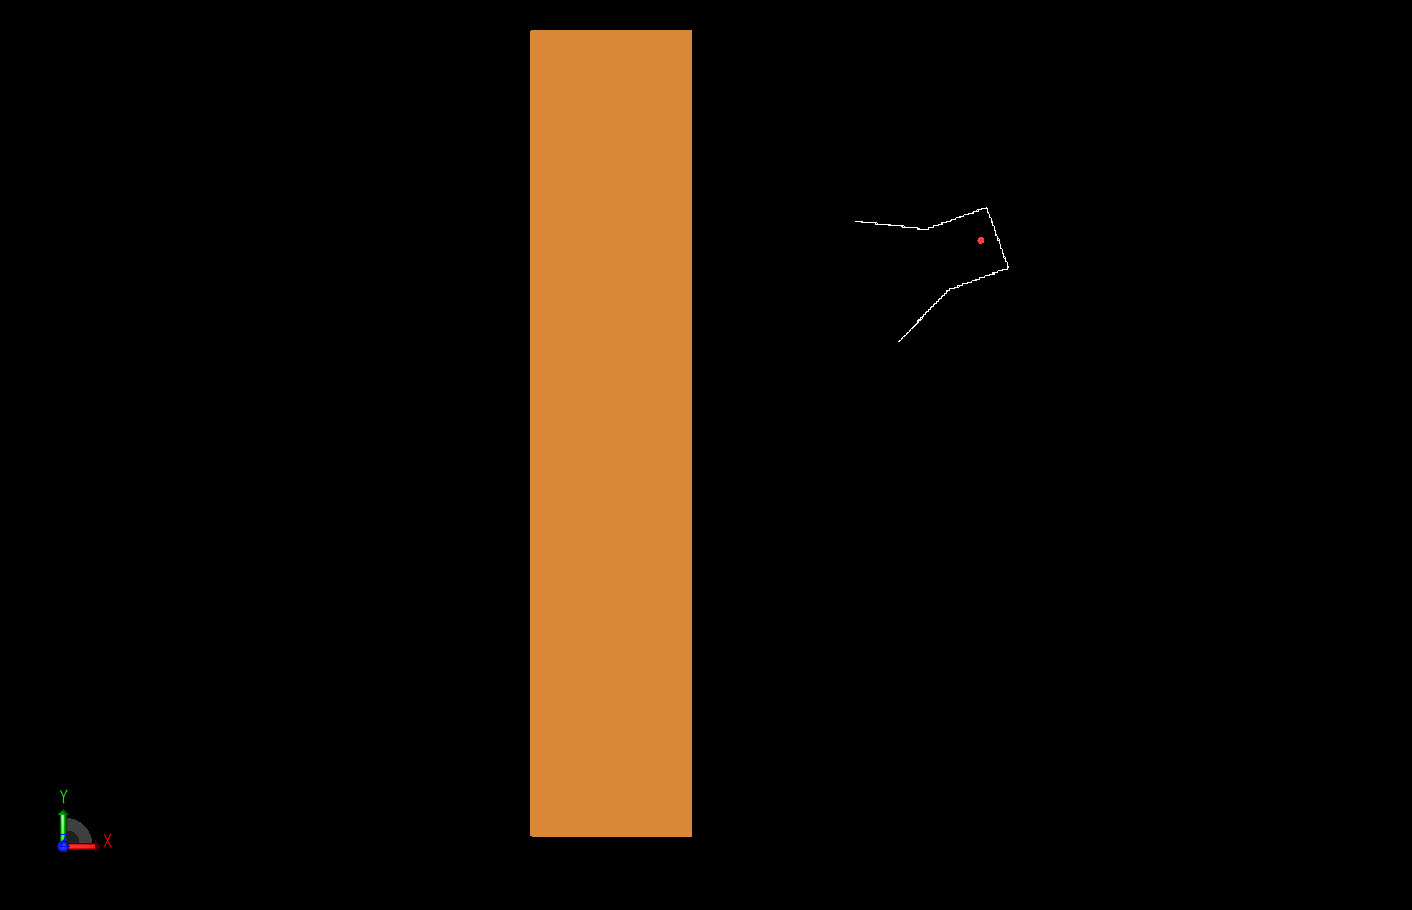 Figure 1  The basic two-dimensional geometry of the material slab and the tilted horn radiator.